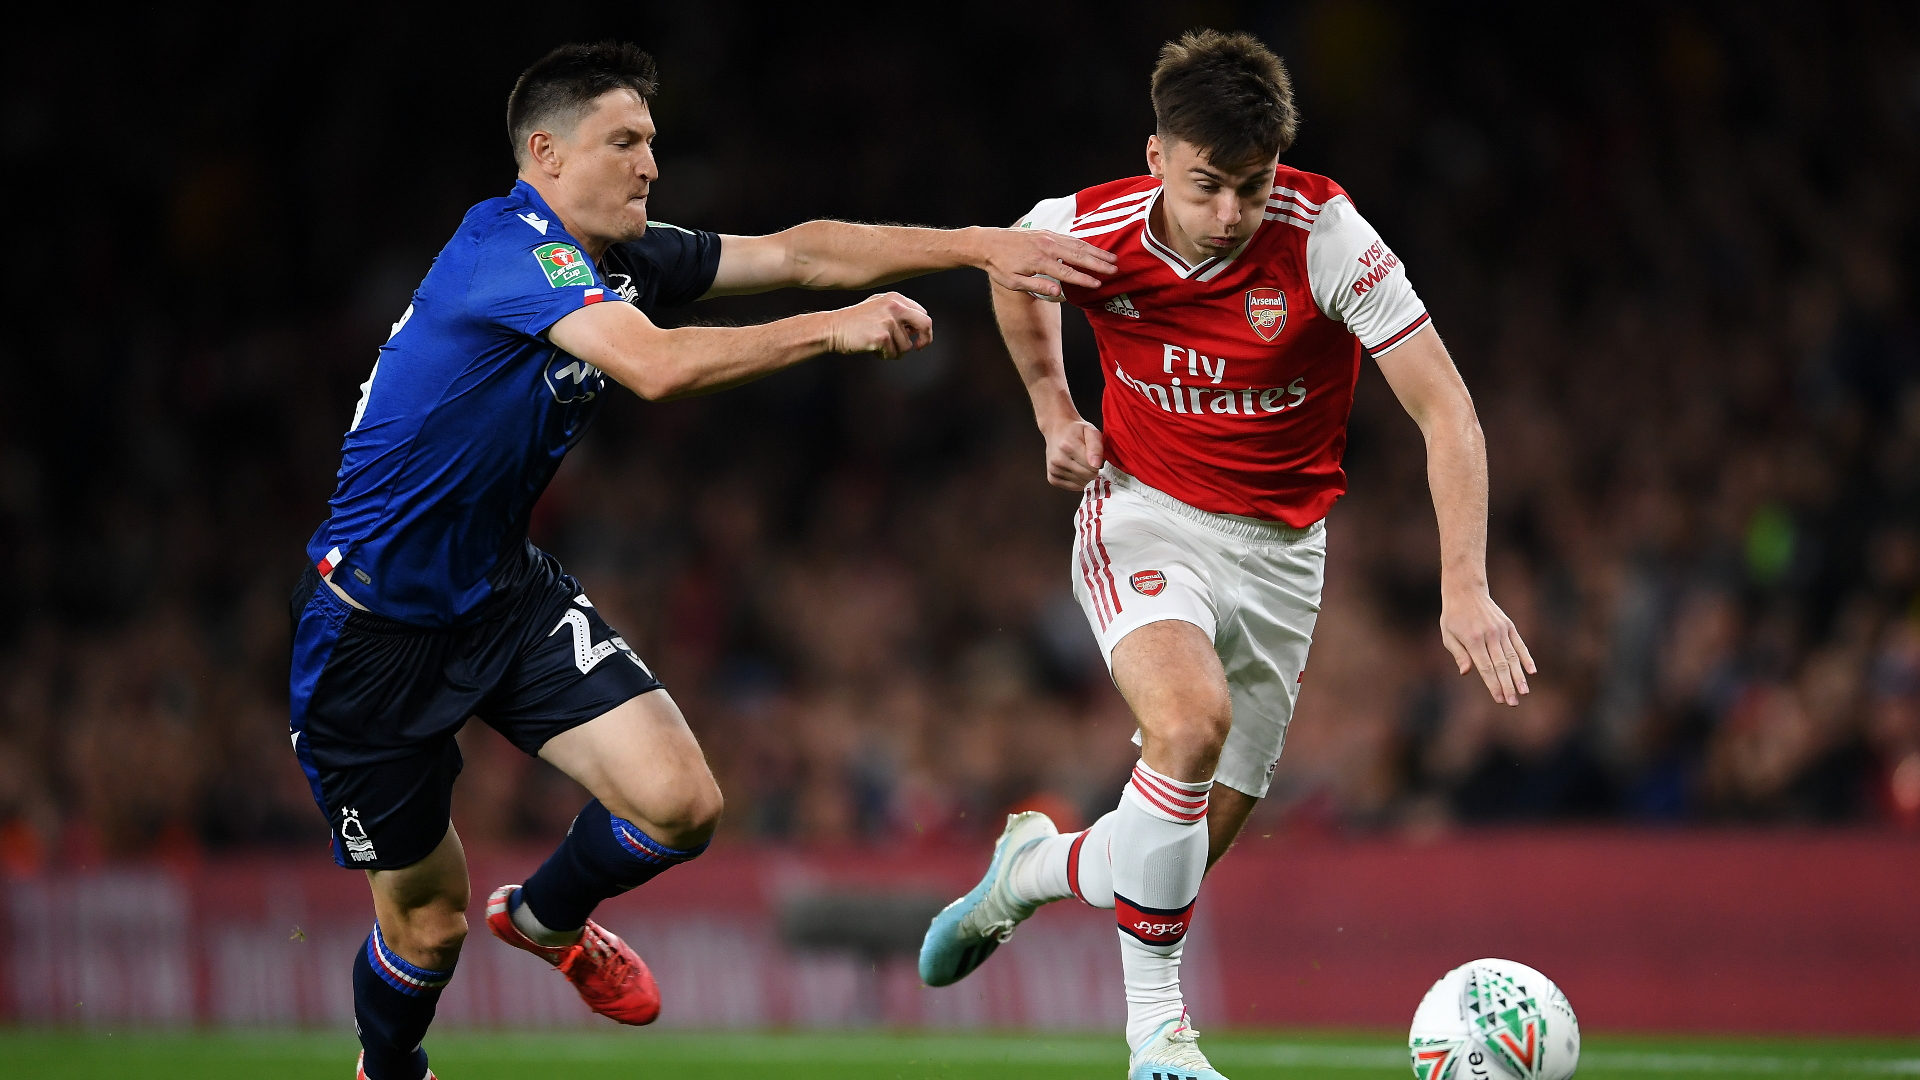 Kieran Tierney, Arsenal vs Nottingham Forest